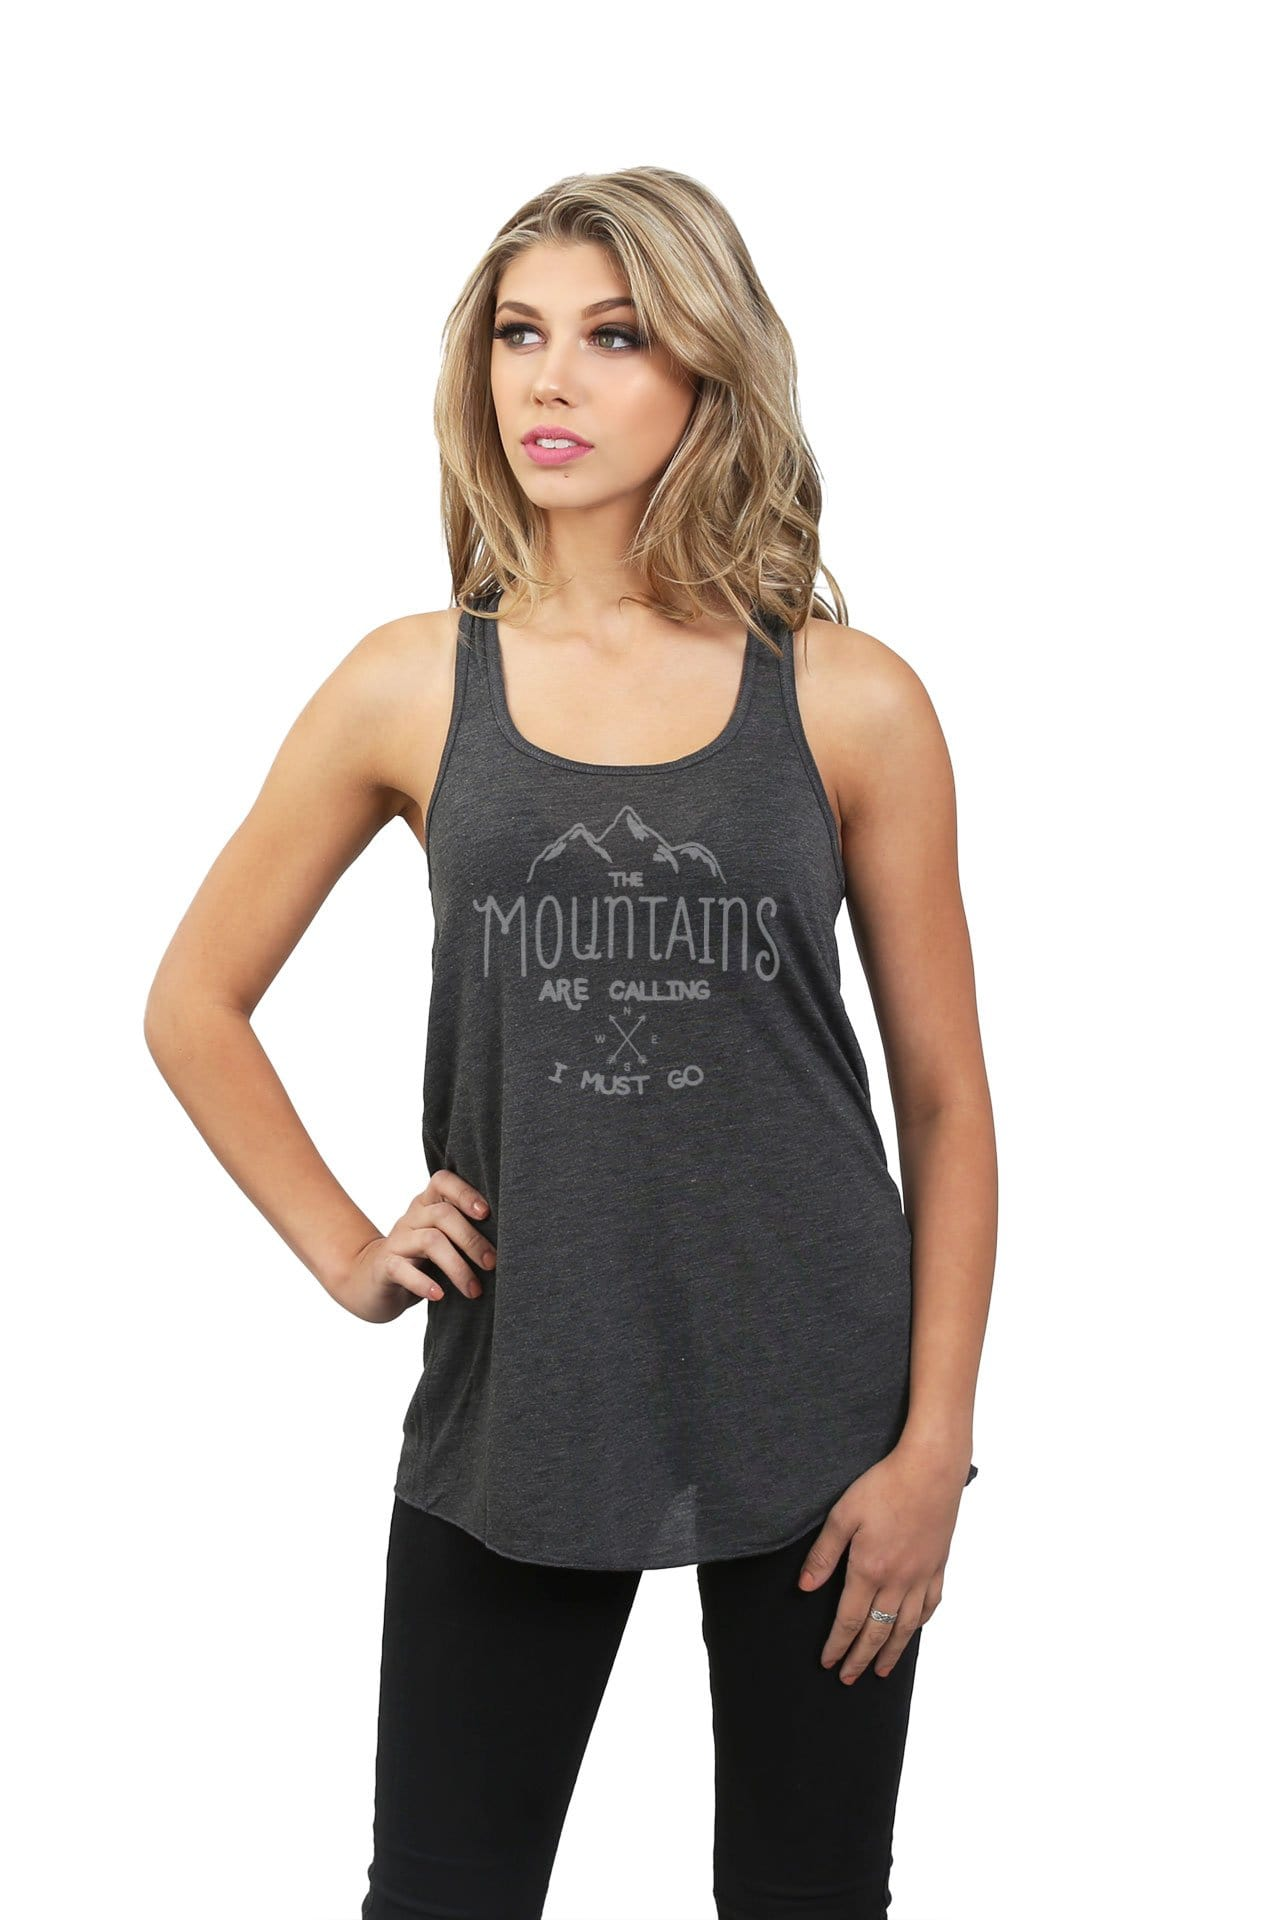 The Mountains Are Calling I Must Go Women Charcoal Grey Flowy Sleeveless Racerback Tank Top